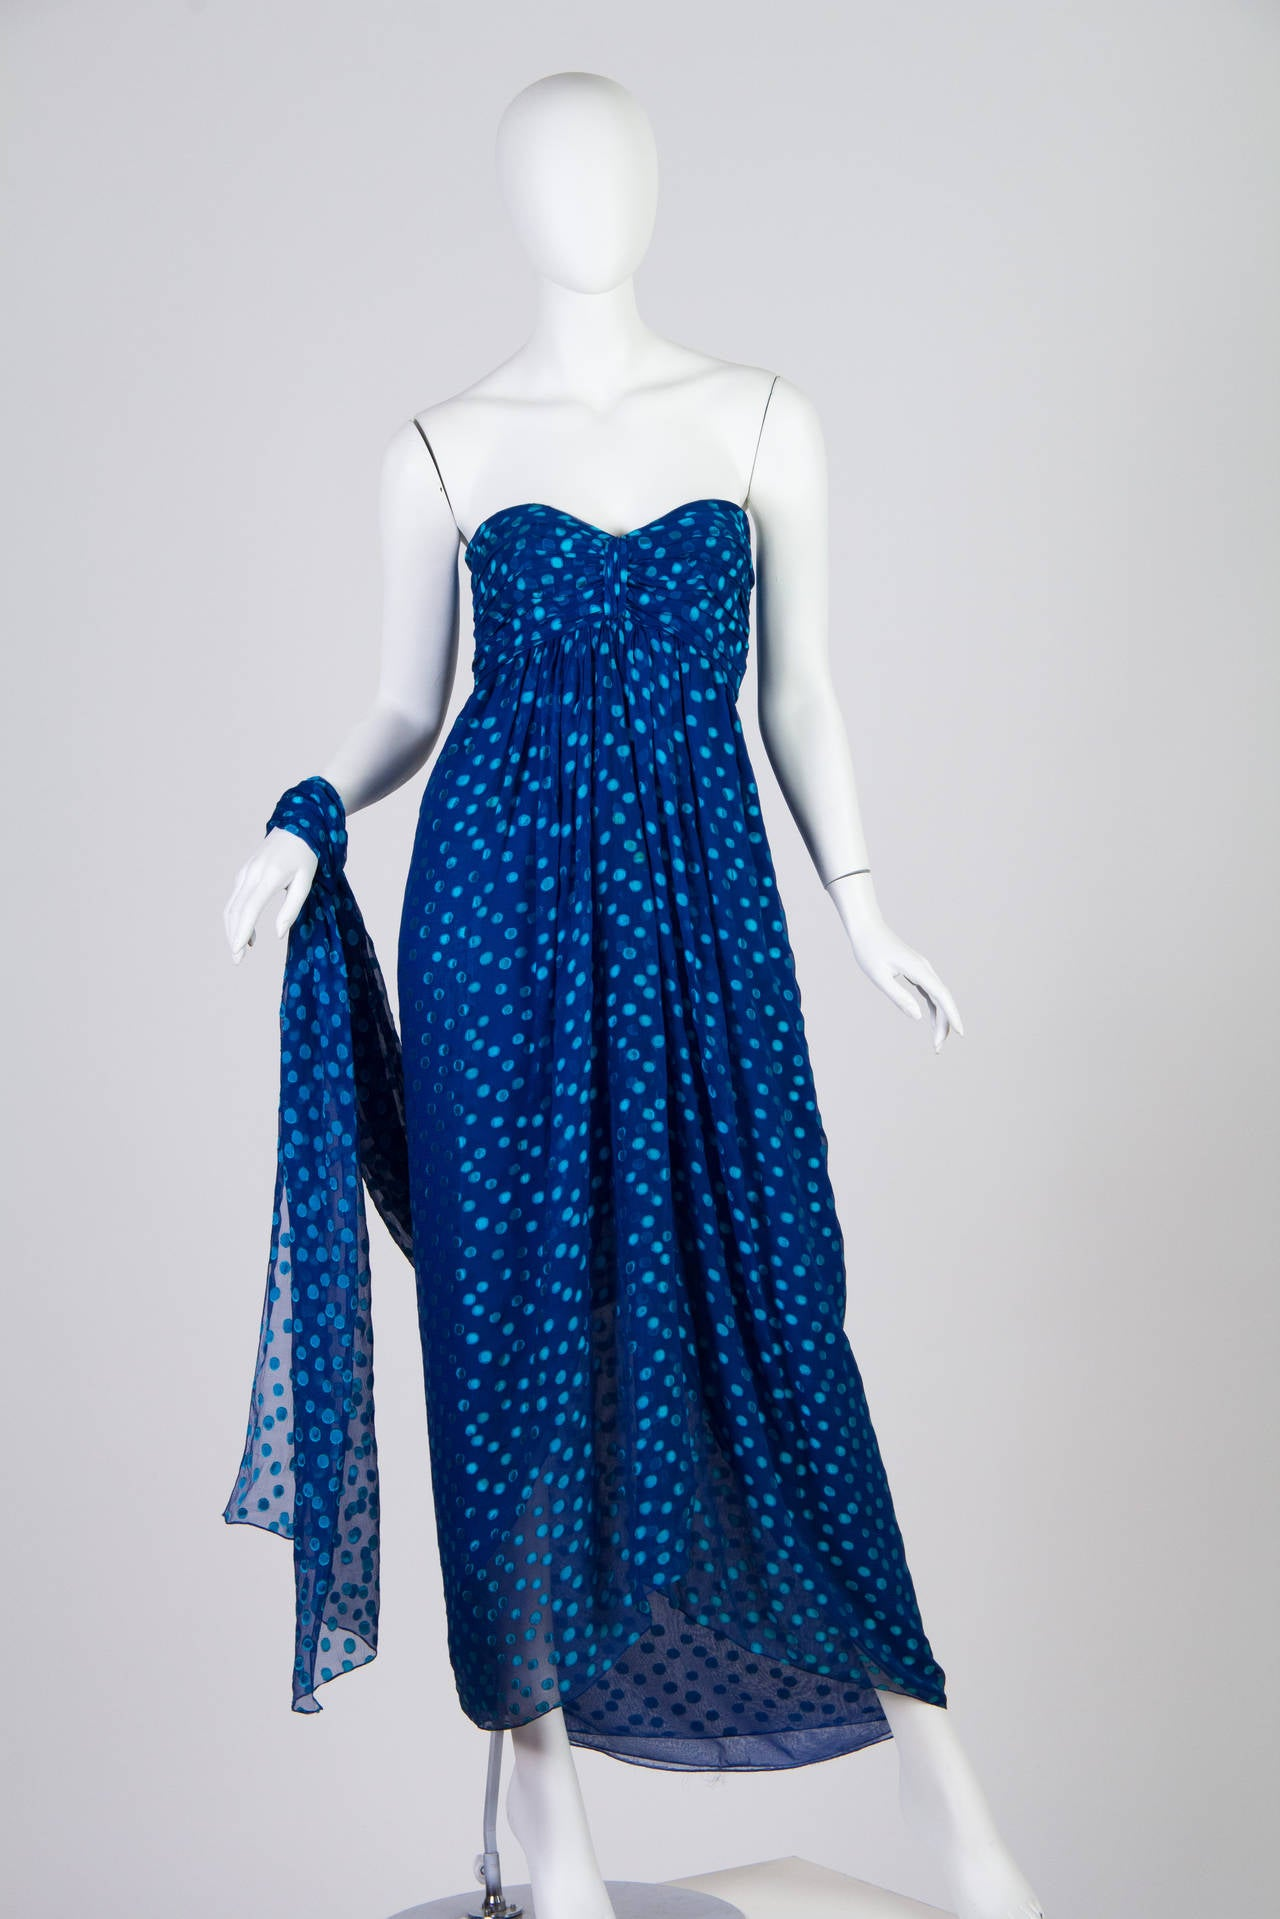 This chiffon gown from Oscar de la Renta for Saks Fifth Avenue is a stunning shade of ultramarine, with shimmering aqua polka dots scattered across it like light dappled on water. Elegant Greek-goddess draping is paired with the fun polka dot